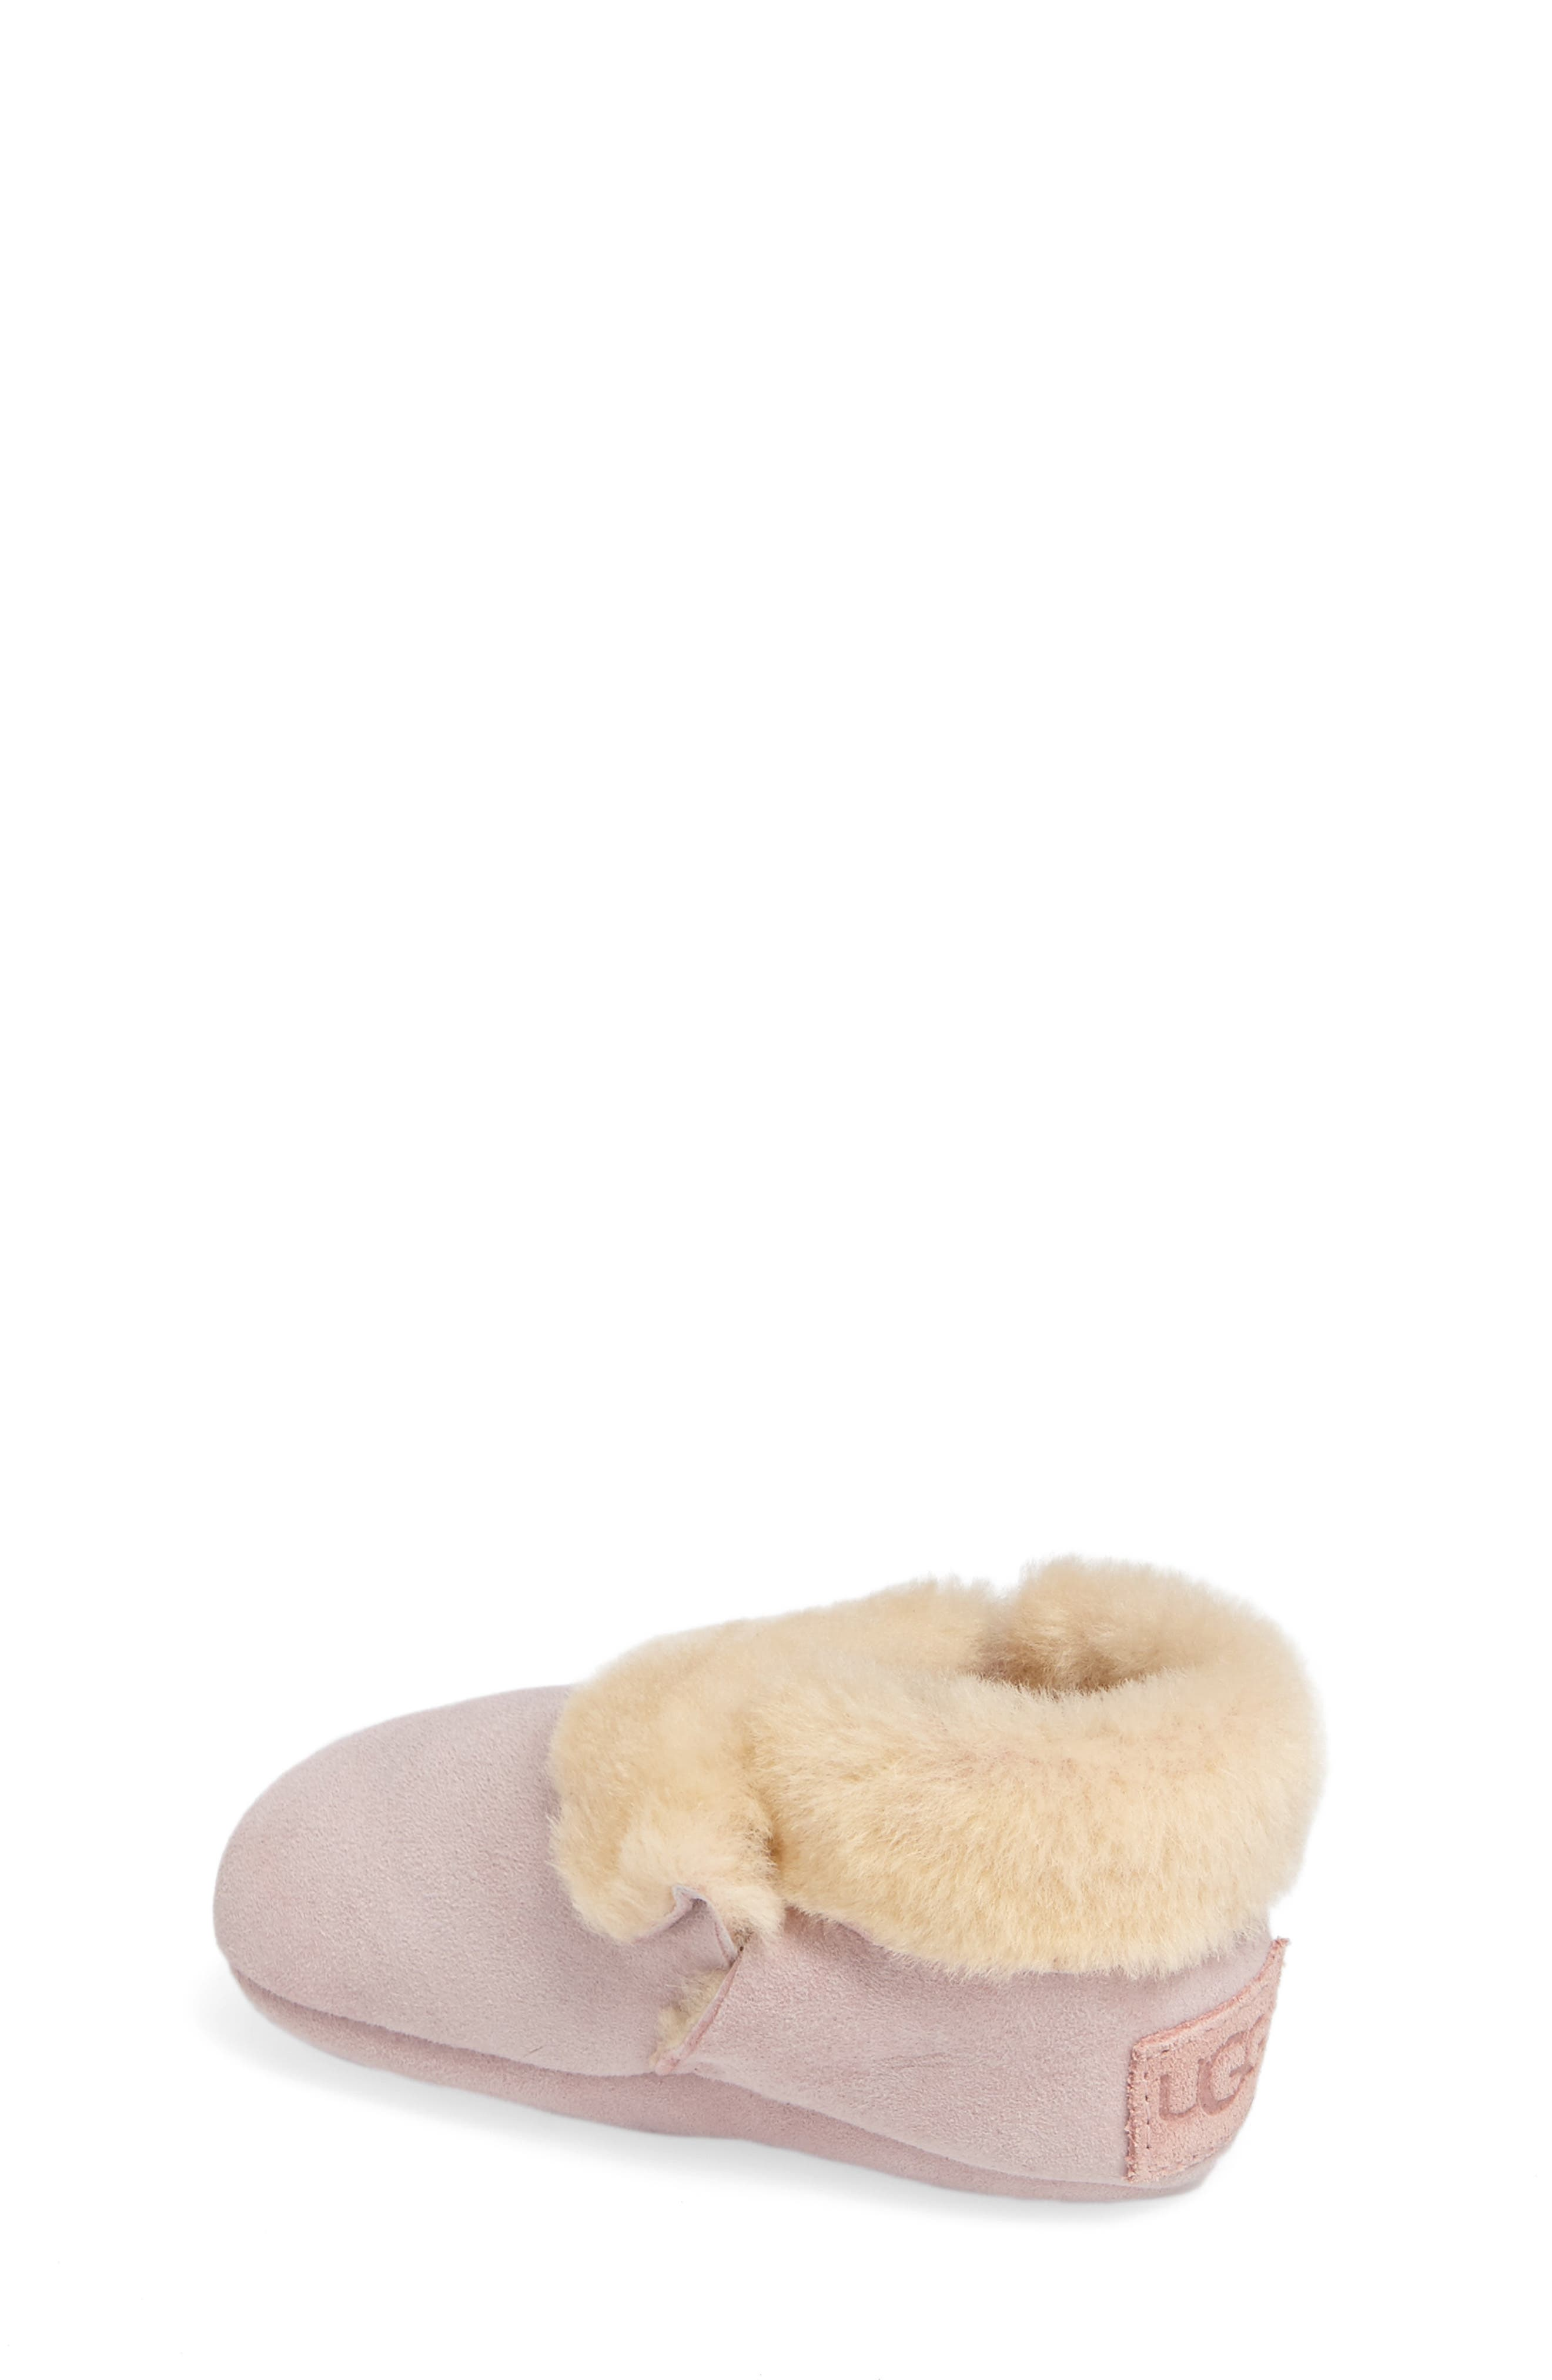 Solvi Genuine Shearling Low Cuffed Bootie,                             Alternate thumbnail 2, color,                             650